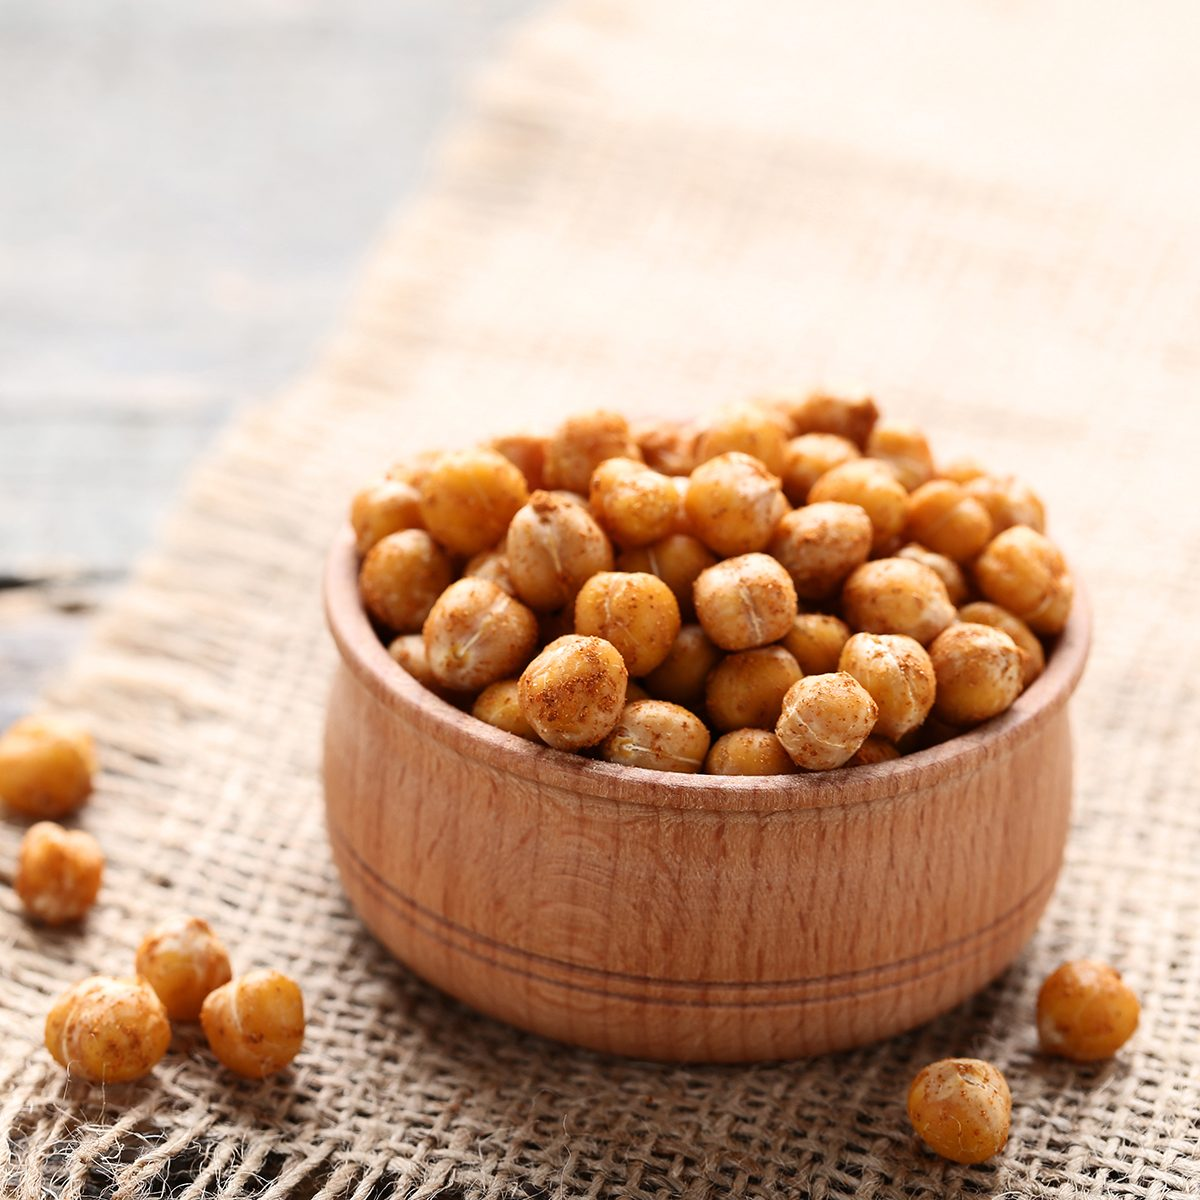 Roasted chickpeas in bowl on gray wooden table